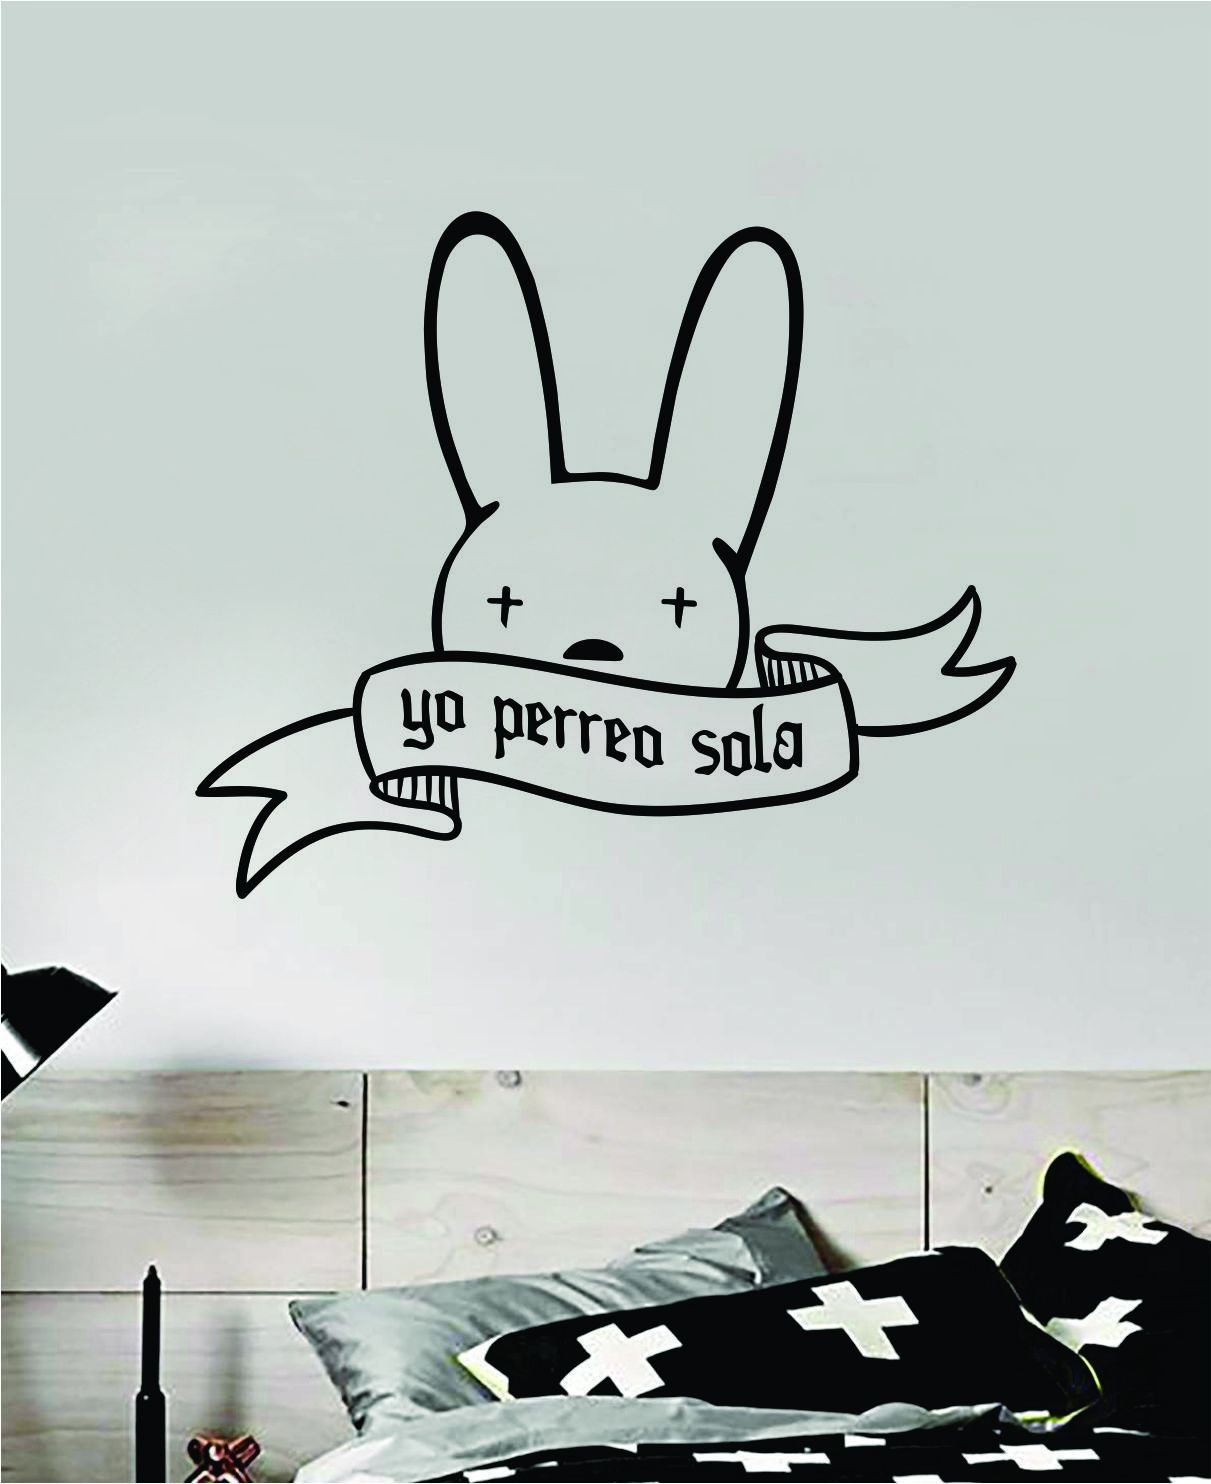 """Yo Perreo Sola Bad BunnyThe latest in home decorating. Beautiful wall vinyl decals, that are simple to apply, are a great accent piece for any room, come in an array of colors, and are a cheap alternative to a custom paint job.Default color is black MEASUREMENTS:28"""" x 23.5"""" About Our Wall Decals: * Each decal is made of high quality, self-adhesive and waterproof vinyl.* Our vinyl is rated to last 7 years outdoors and even longer indoors.* Decals can be applied to any clean, smooth and flat surfa"""